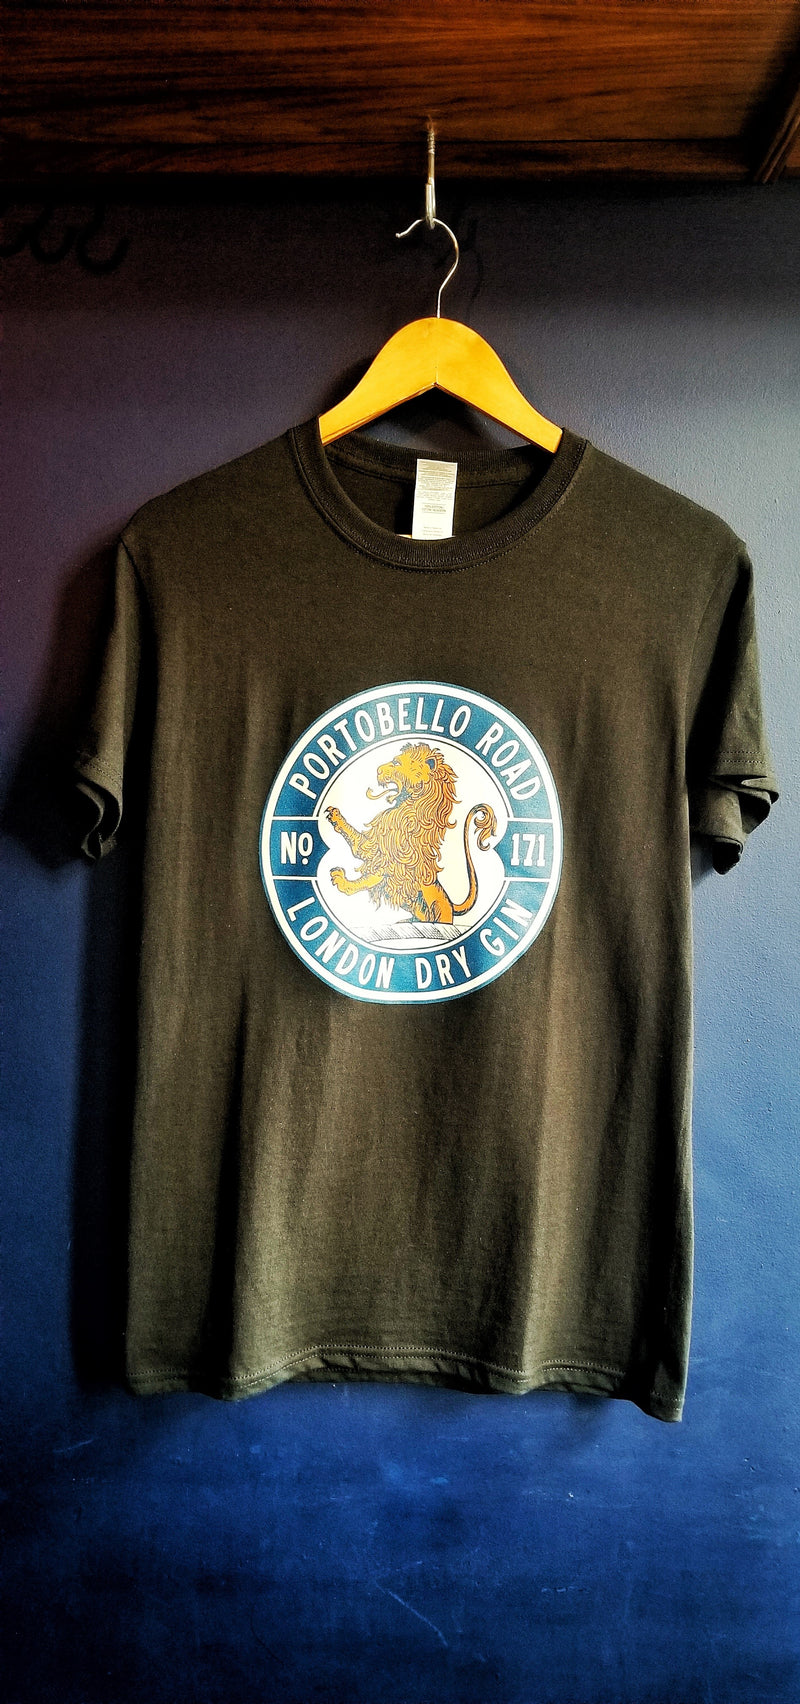 Portobello Road Merch - Logo Tee Shirt - The Distillery London